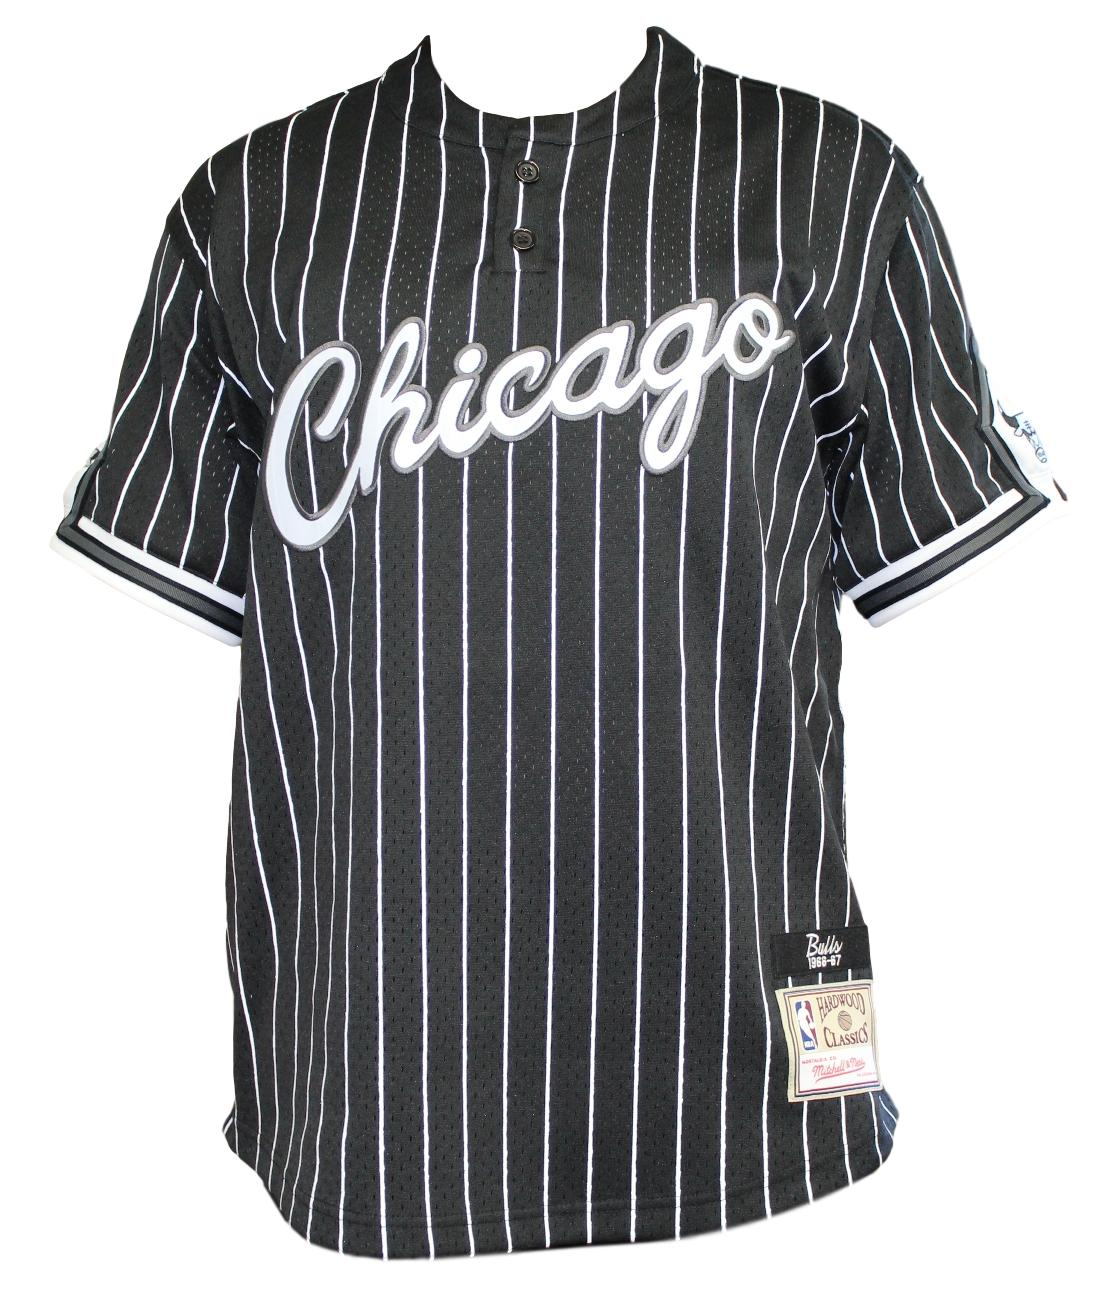 new product c8bbb c6c6c Chicago Bulls Mitchell   Ness Men s Black Pinstriped Mesh Baseball Jersey  Shirt